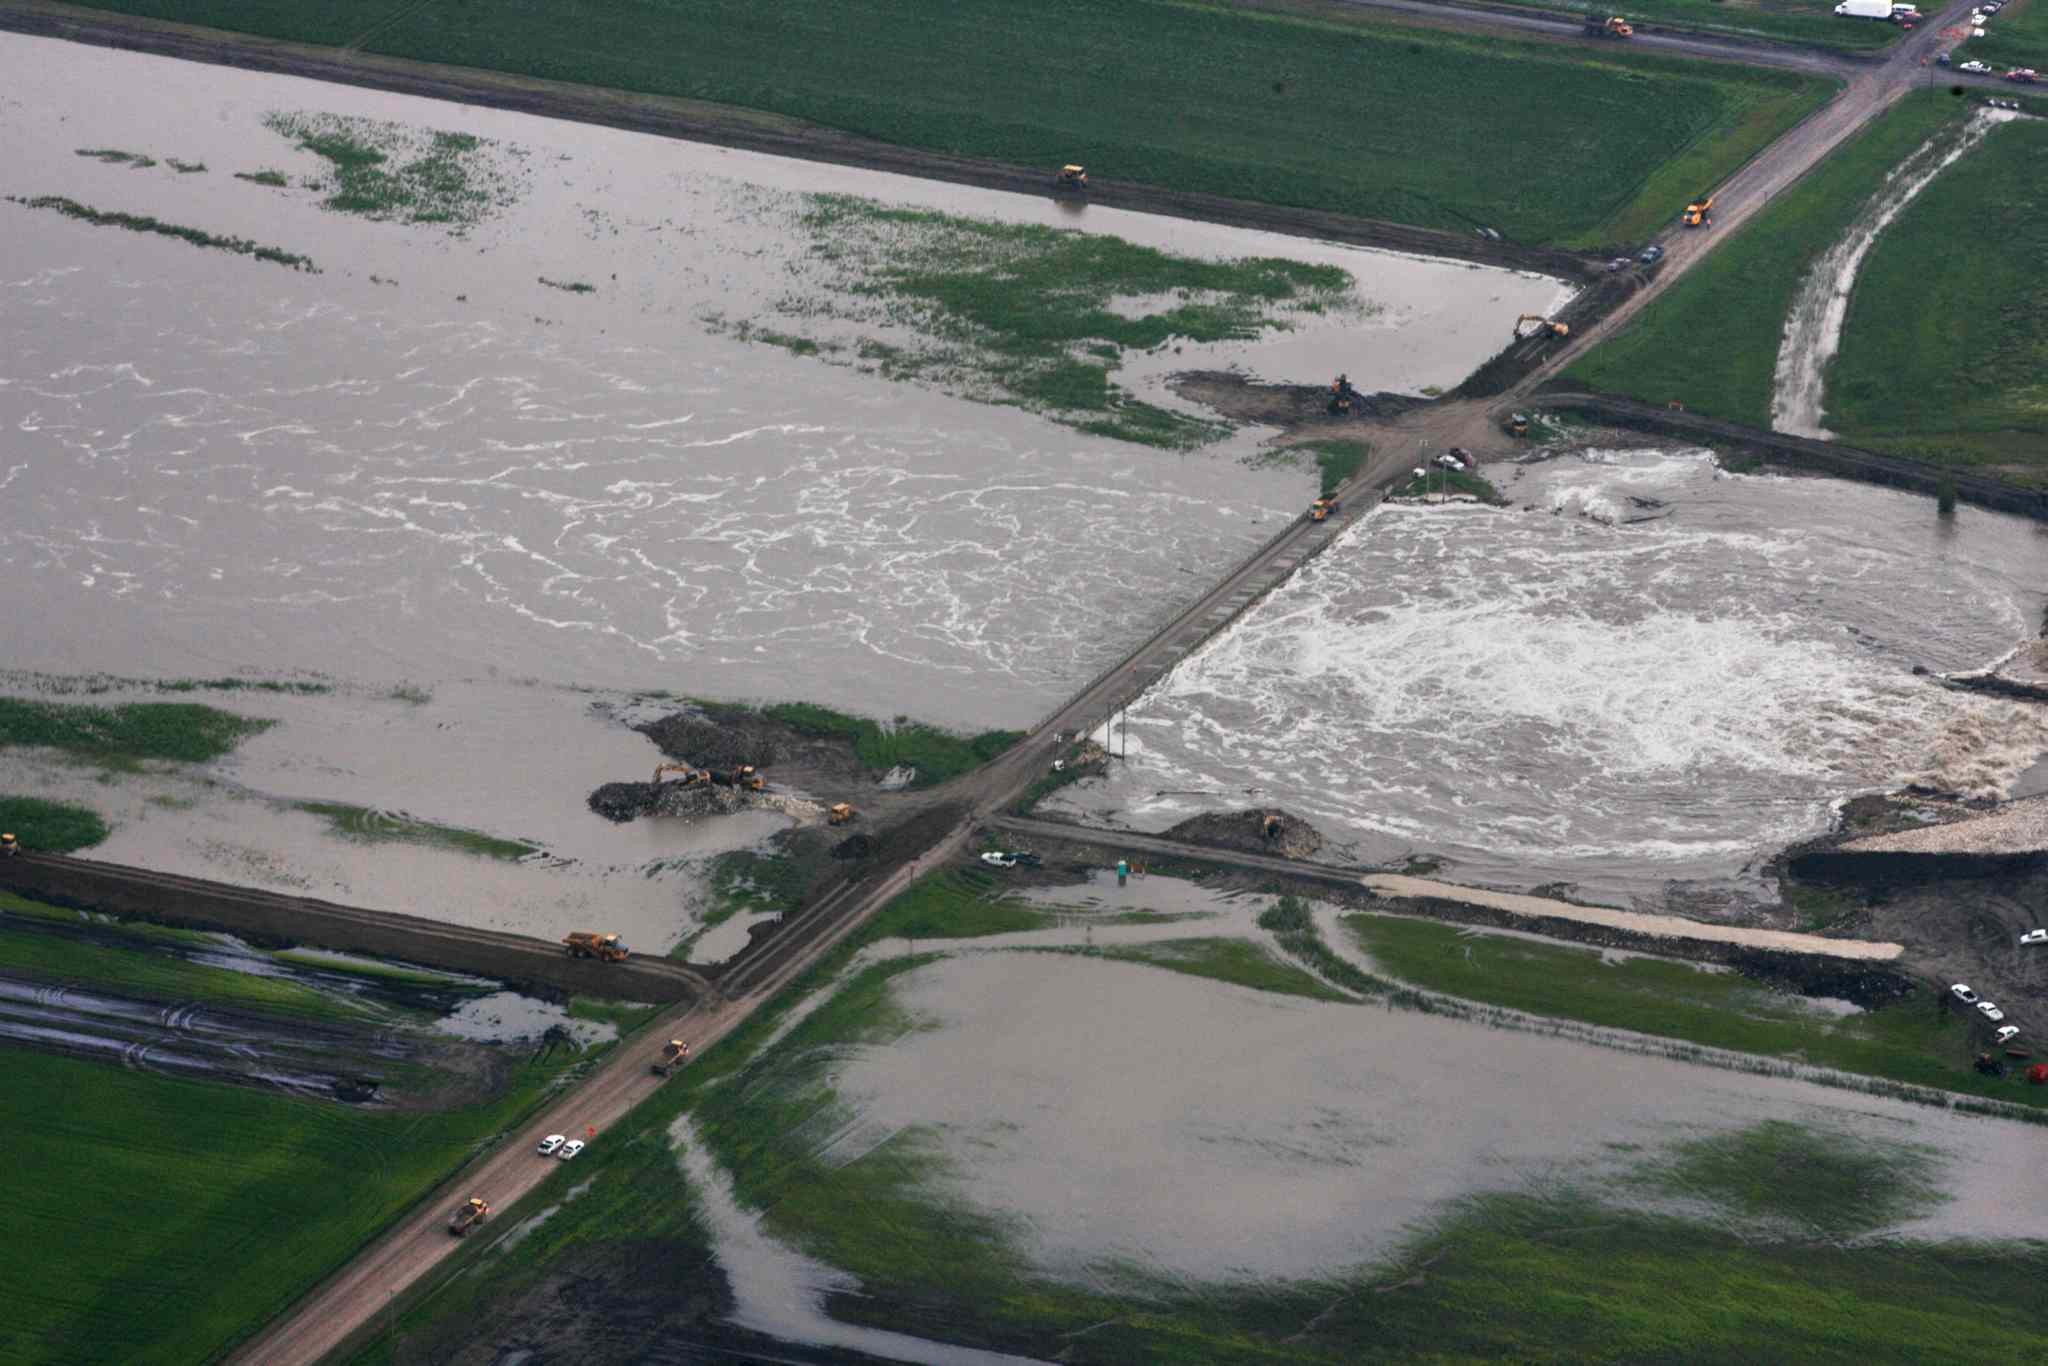 Aerial photo north of  Portage la Prairie area of the man-made diversion leading to Lake Manitoba.